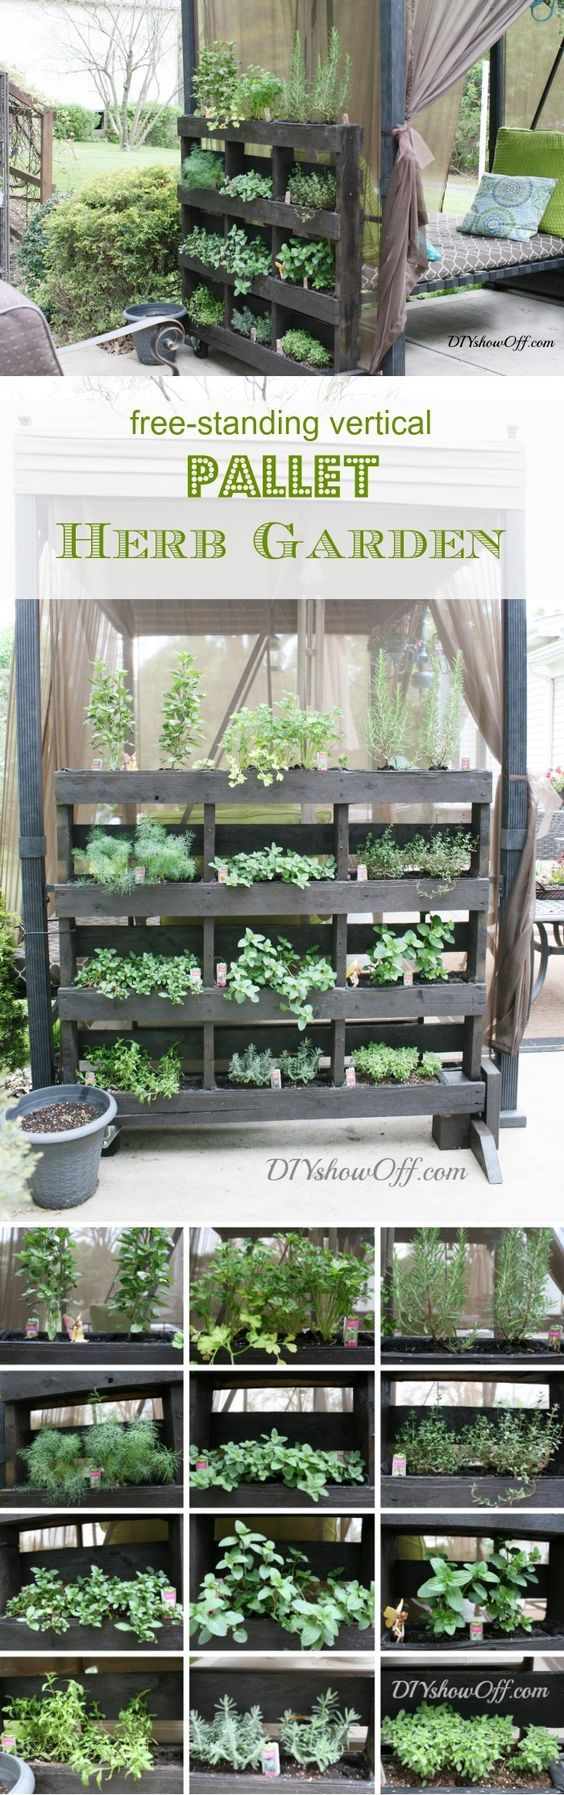 19 Inspiring DIY Pallet Planter Ideas 19